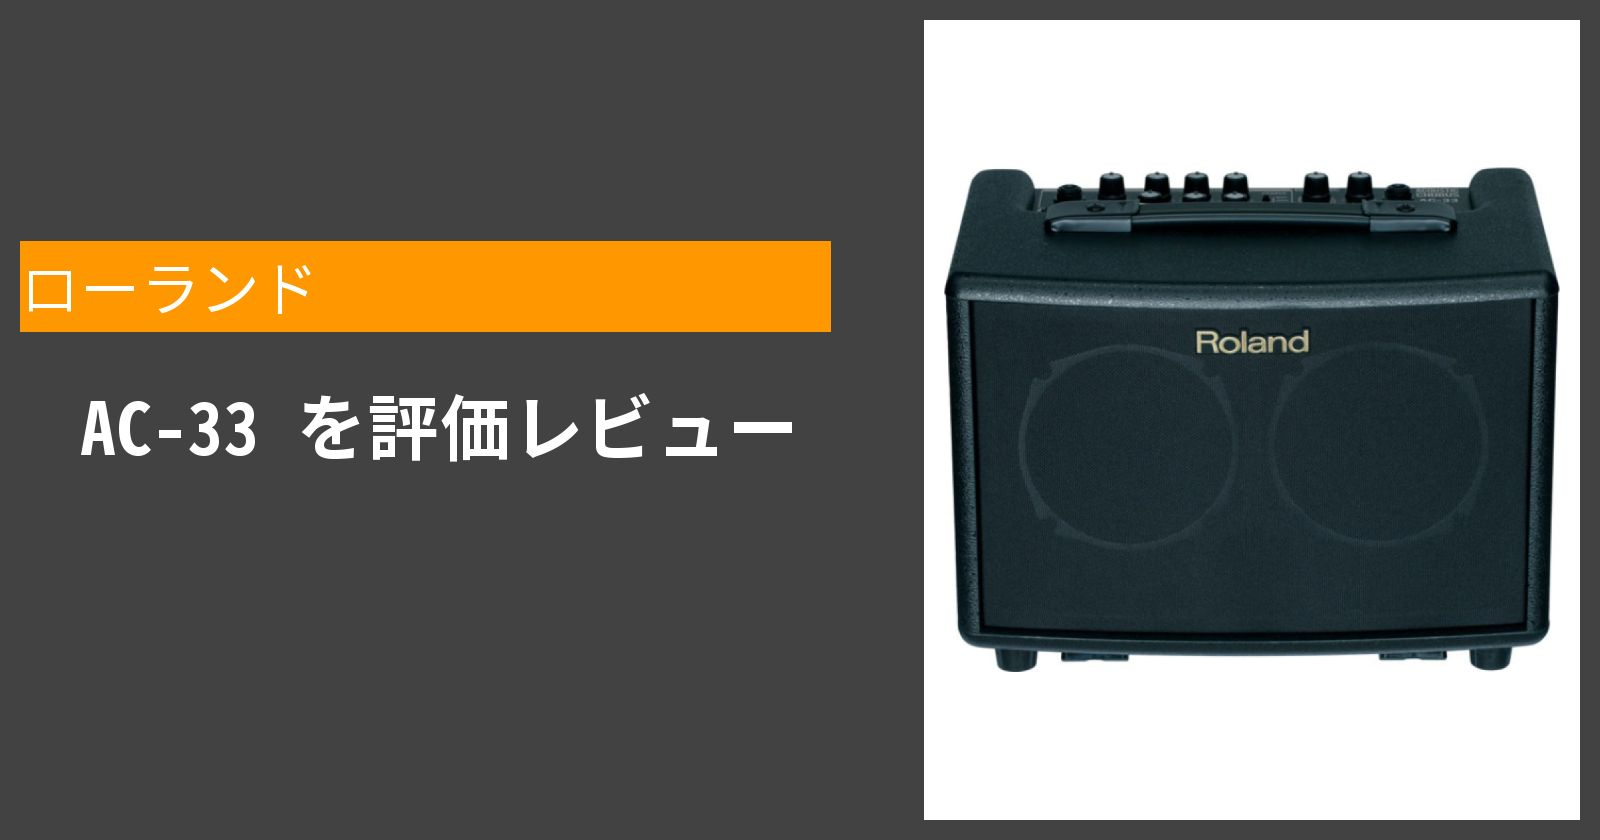 AC-33を徹底評価